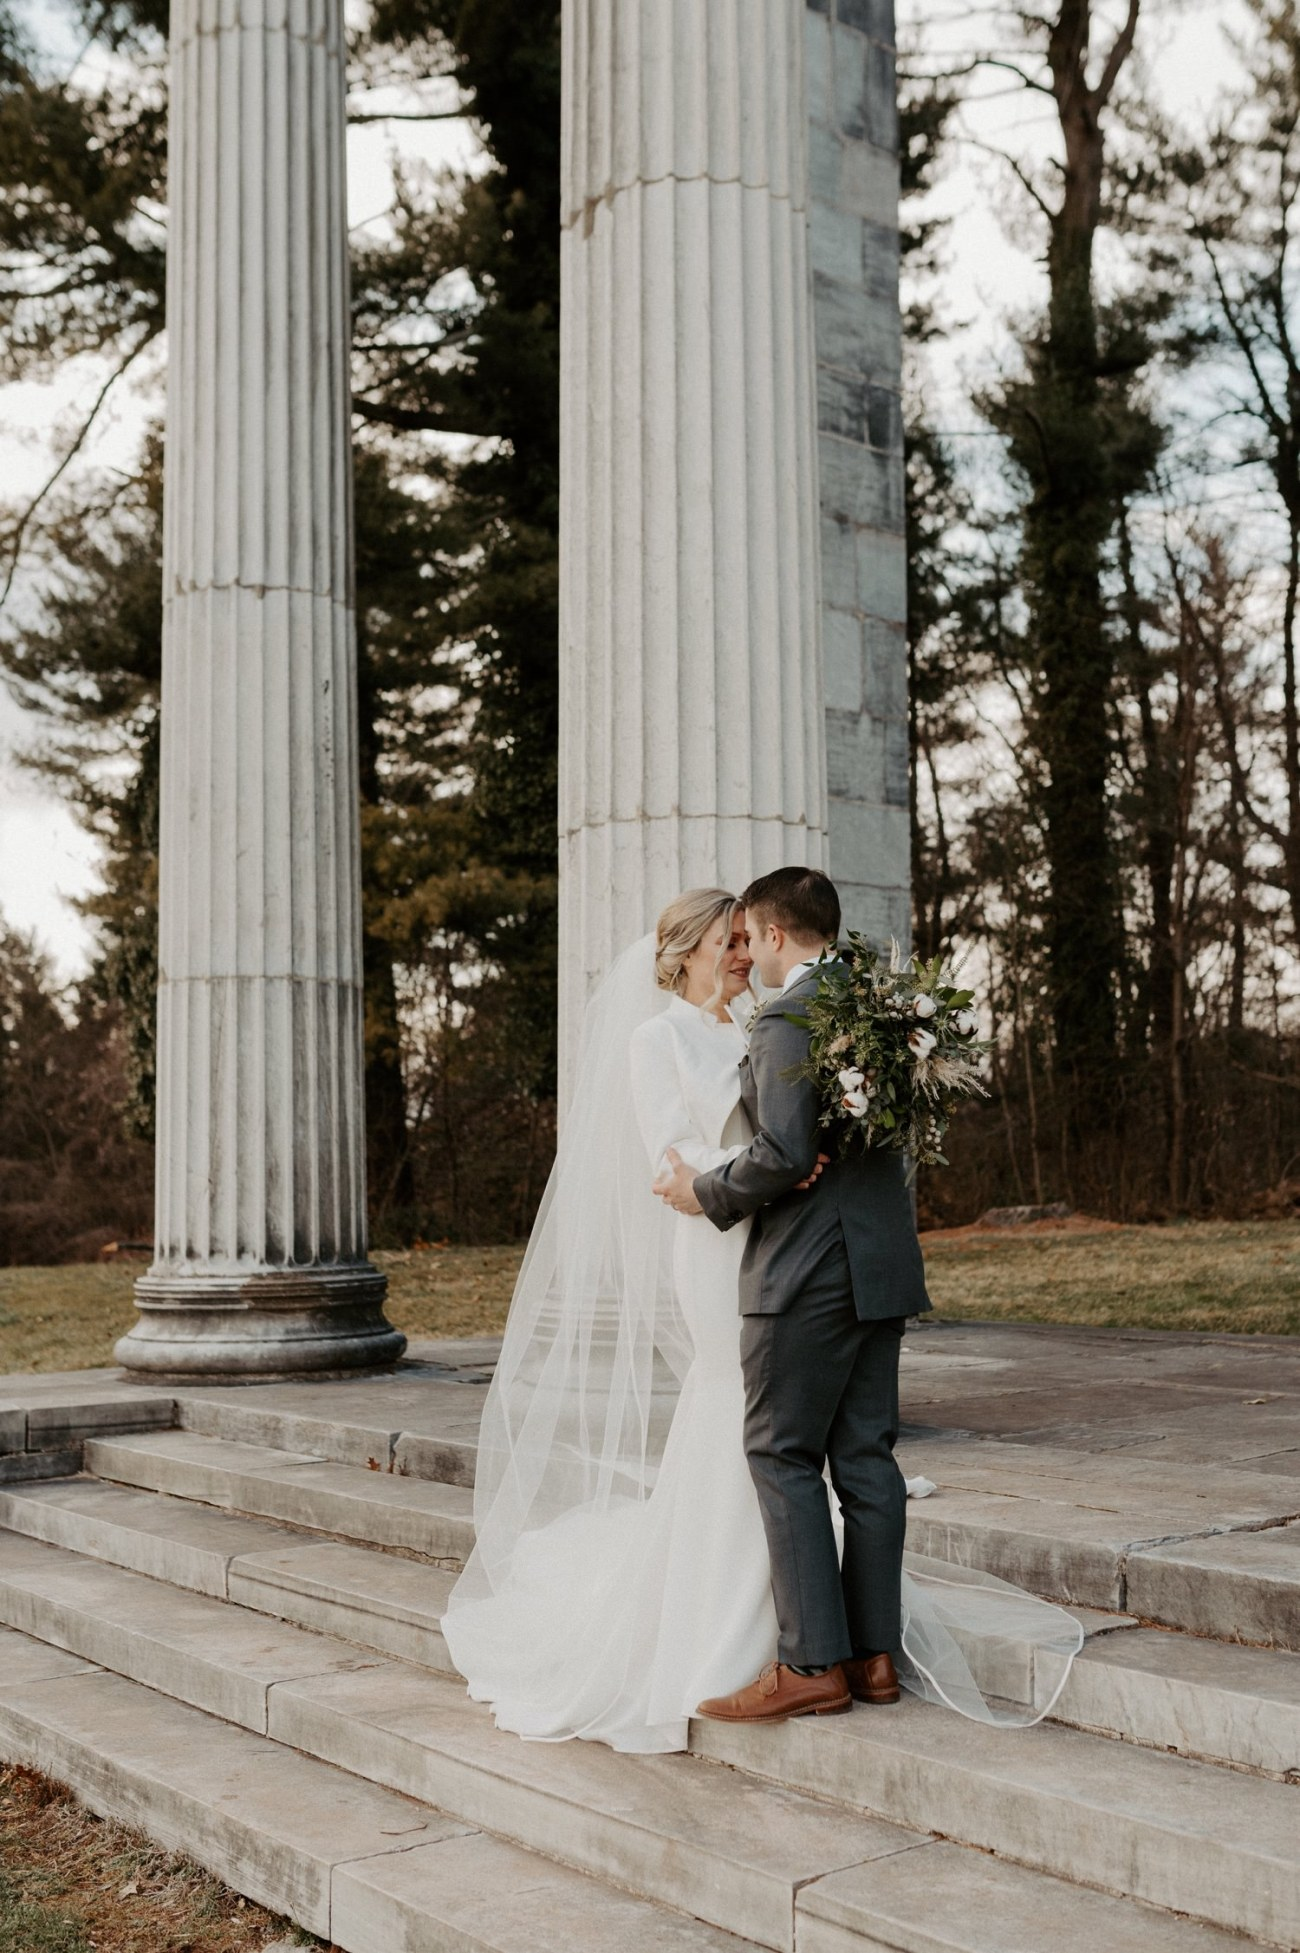 Princeton Battlefield Wedding Princeton University Elopement New Jersey Wedding Photographer Anais Possamai Photography 21